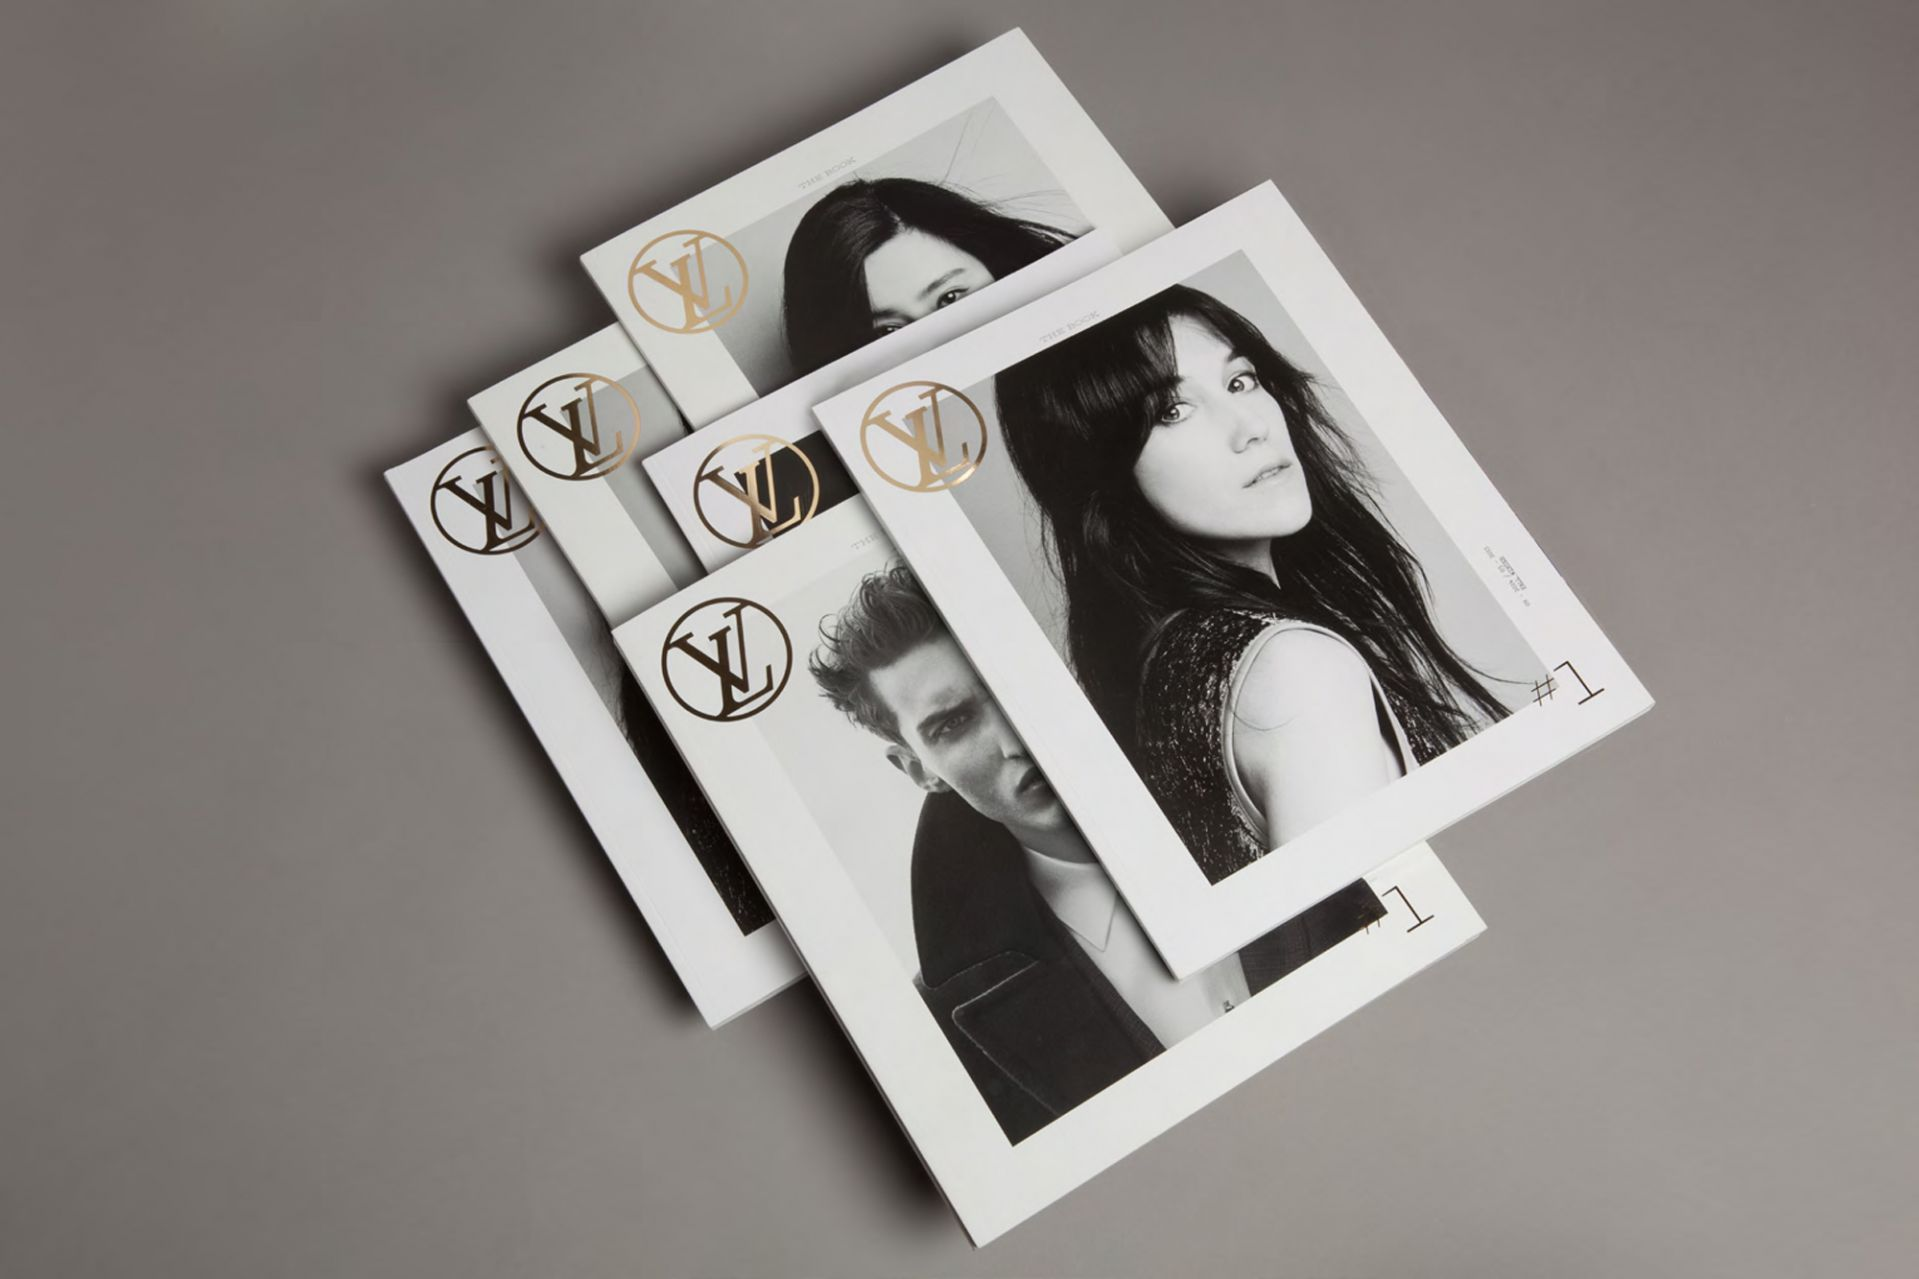 Louis Vuitton magazine design